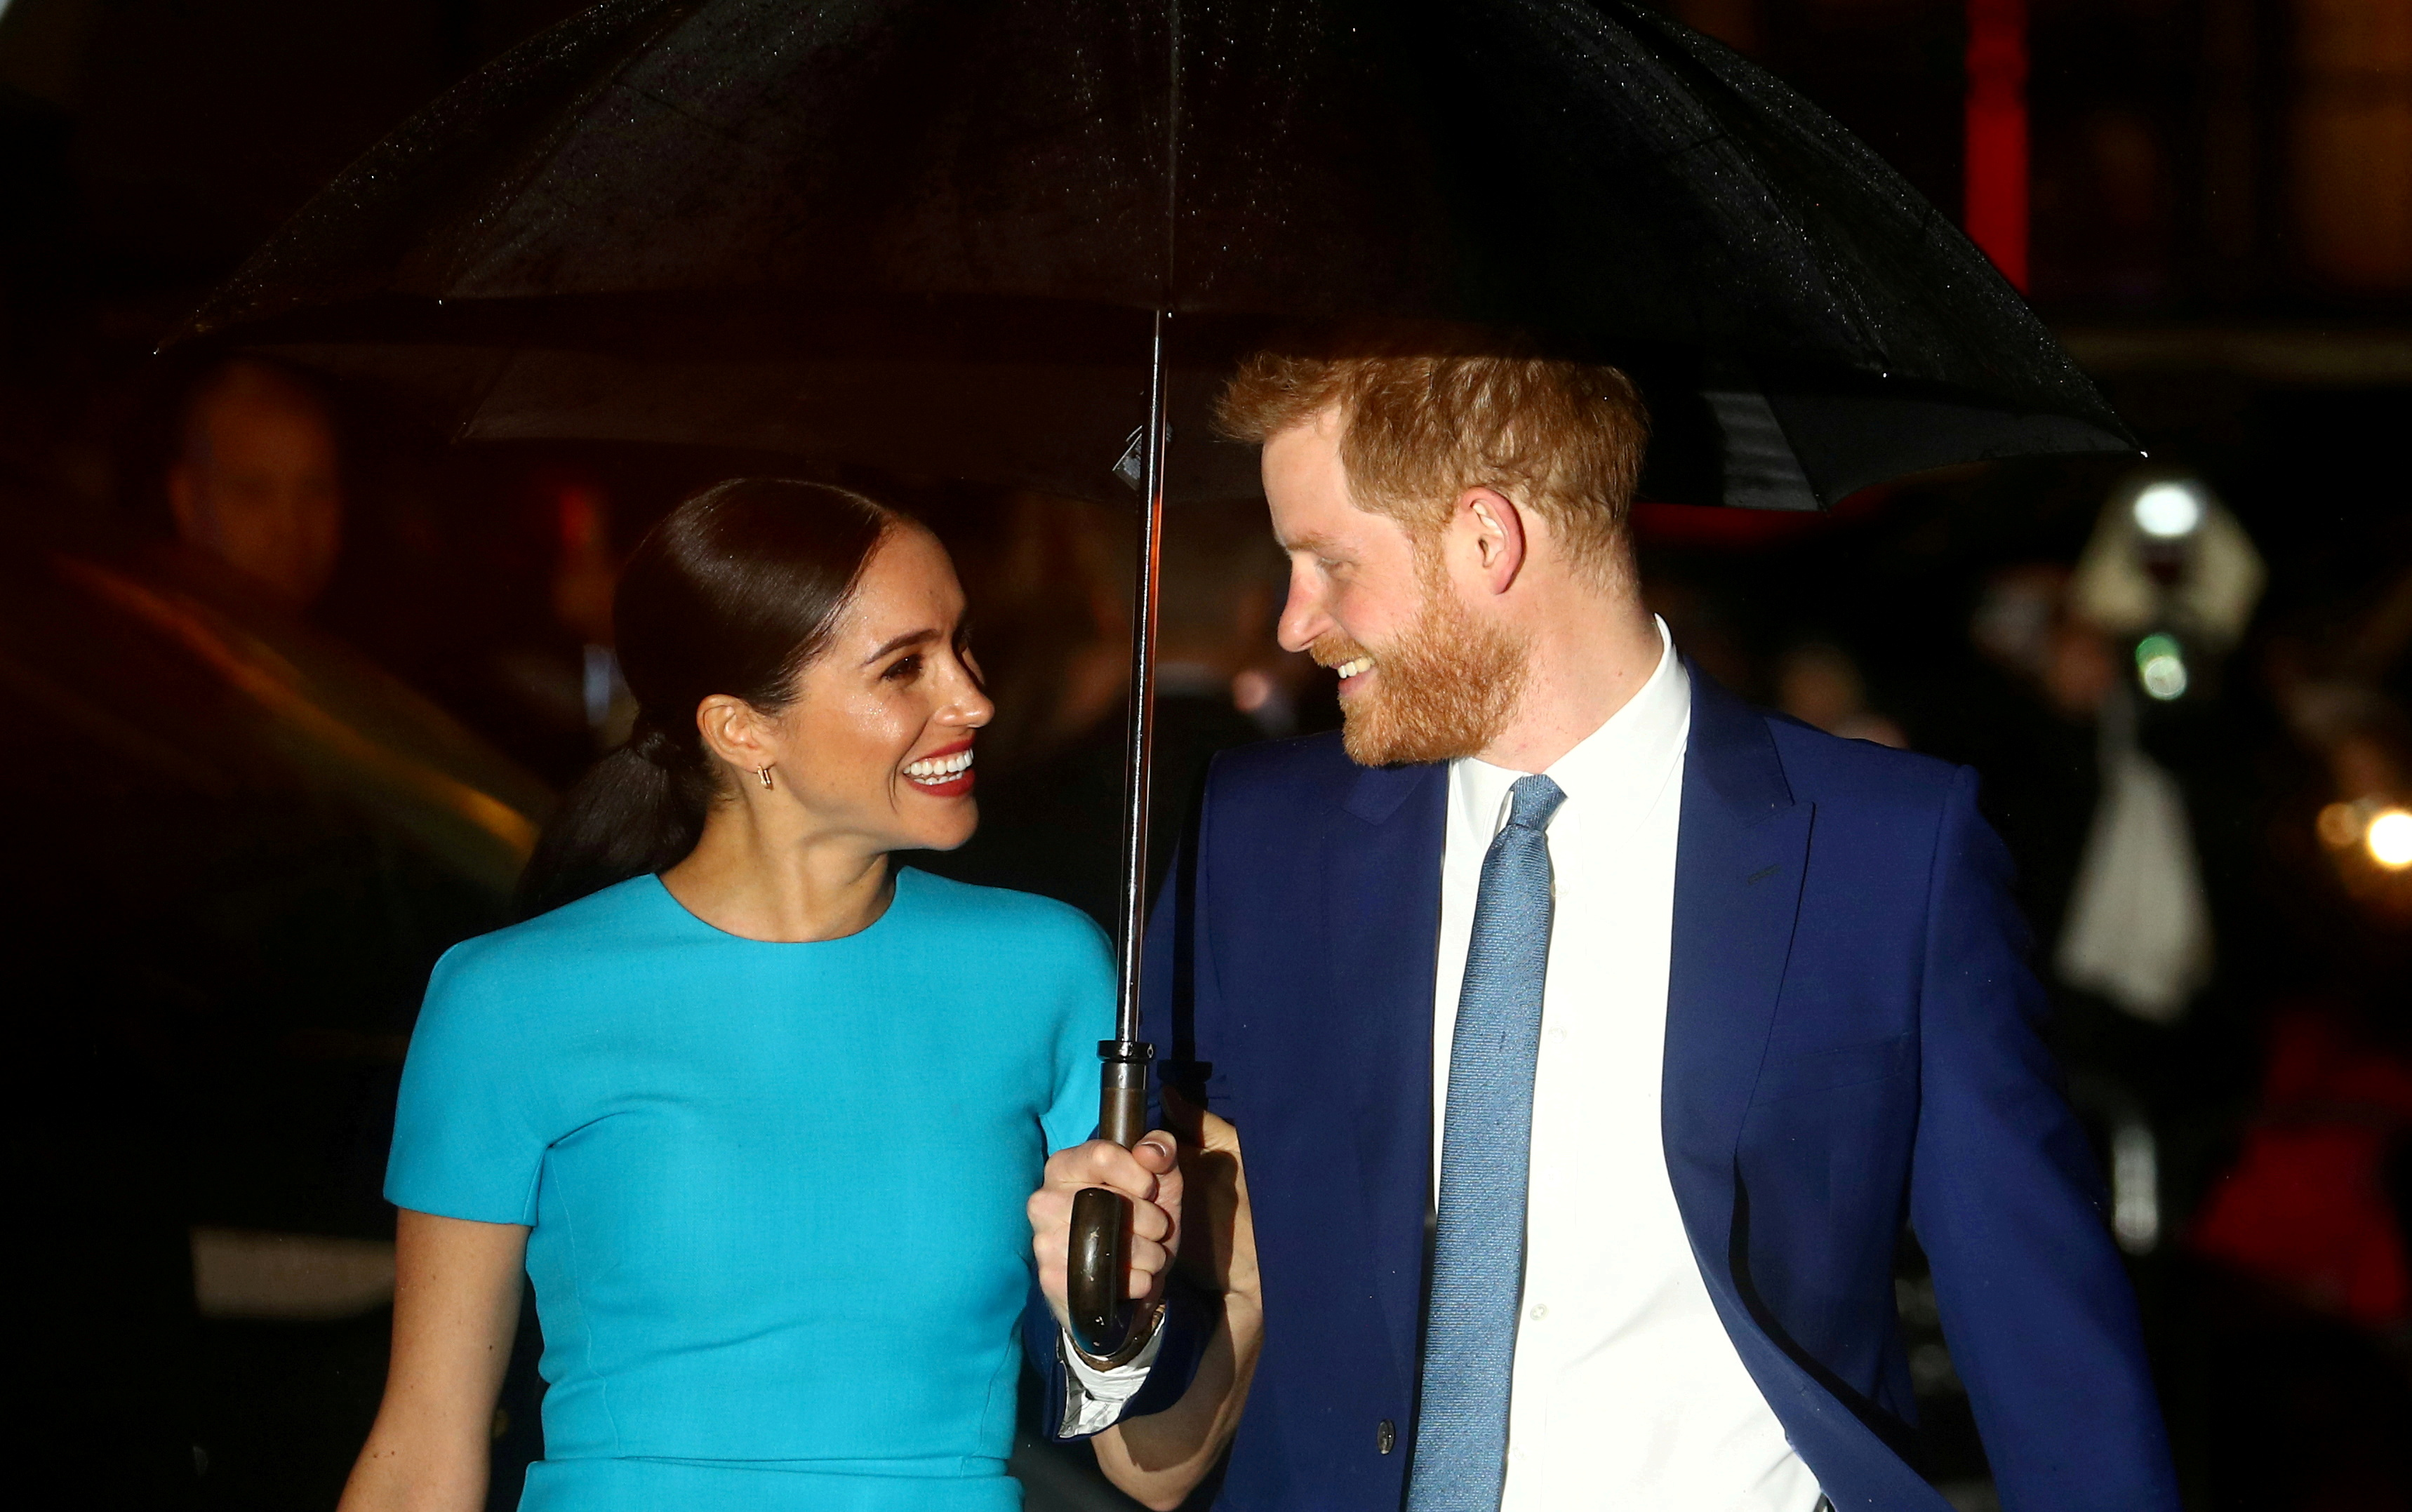 Britain's Prince Harry and his wife Meghan, Duchess of Sussex, arrive at the Endeavour Fund Awards in London, Britain March 5, 2020. REUTERS/Hannah McKay/File Photo